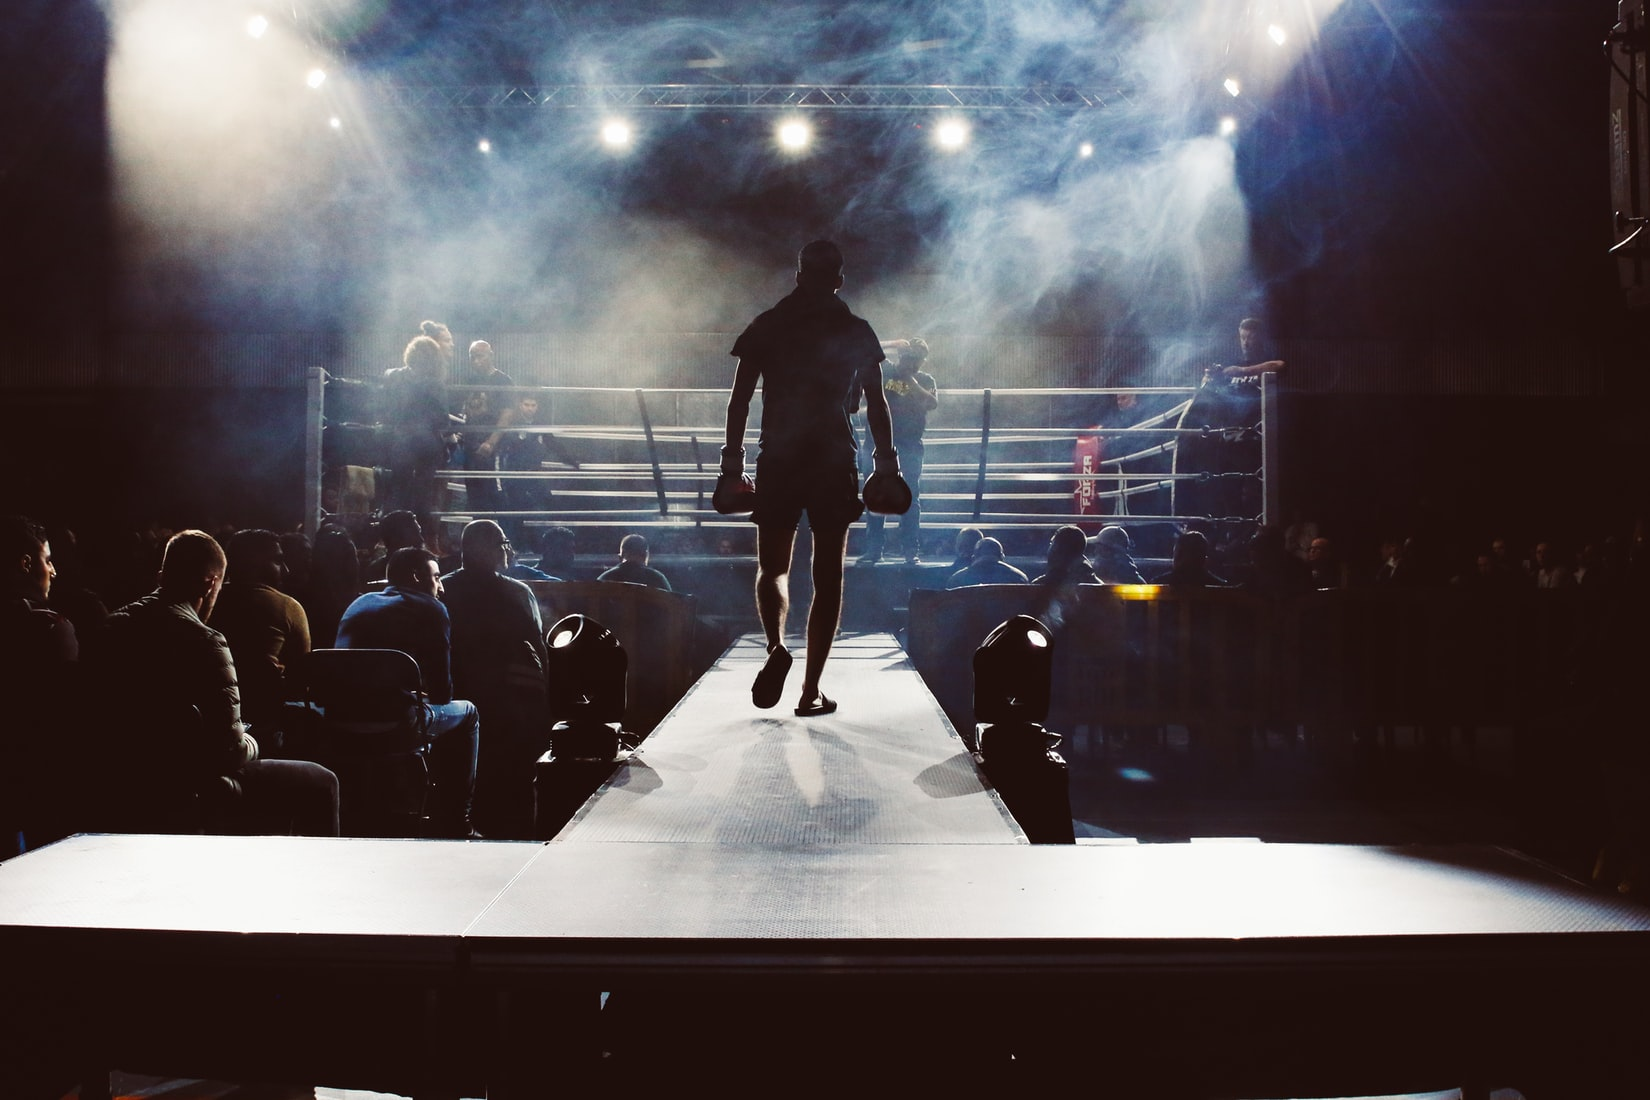 Man walking towards boxing ring surrounded by audience